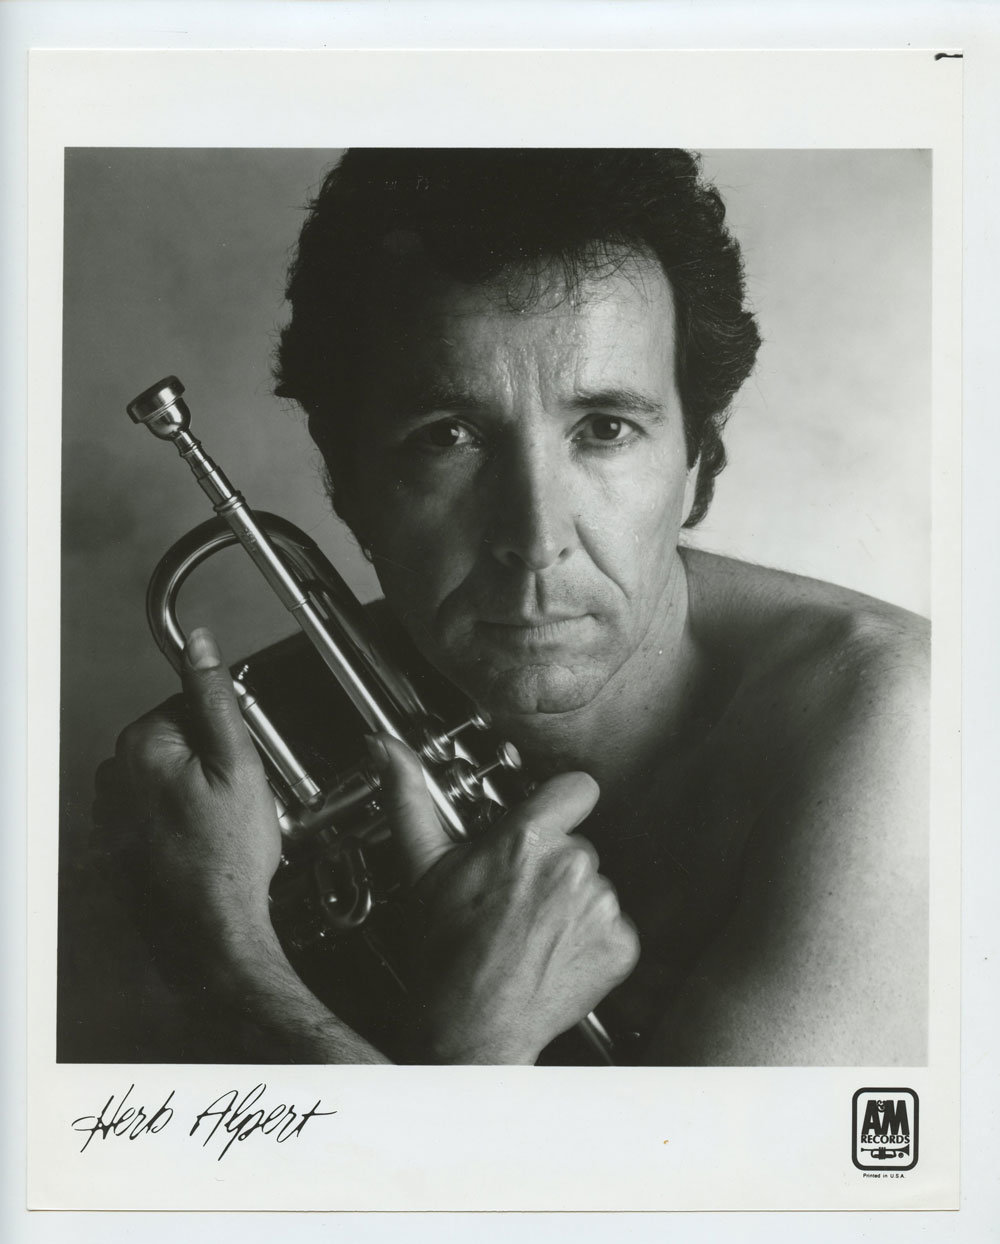 Herb Alpert Photo 1983 Blow Your Own Horn Publicity Promo